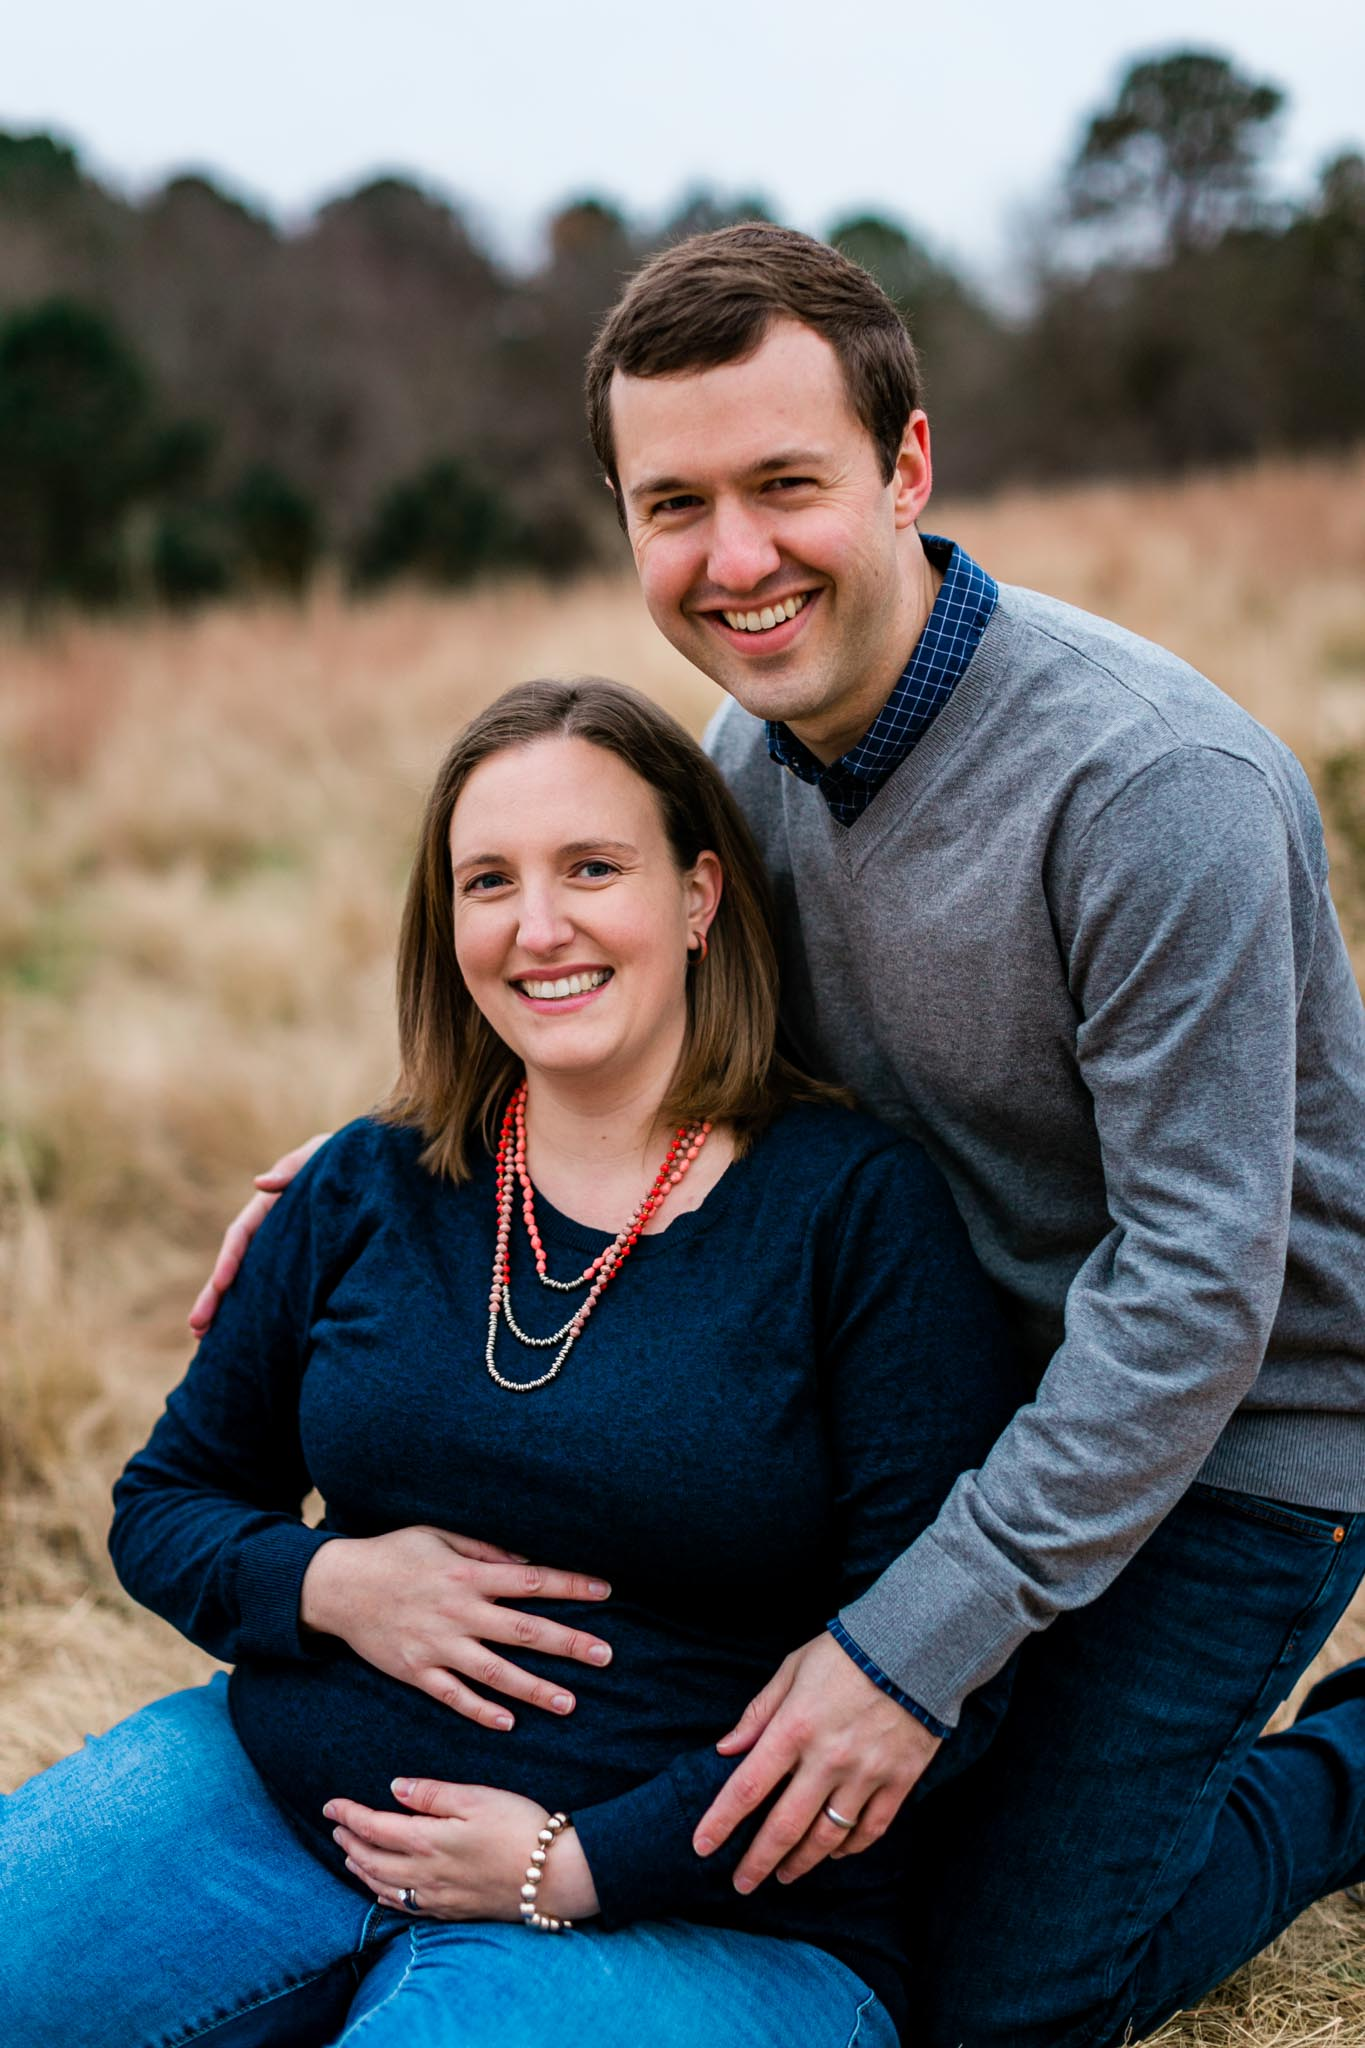 Outdoor maternity portrait in open field at NCMA | Raleigh Maternity Photographer | By G. Lin Photography